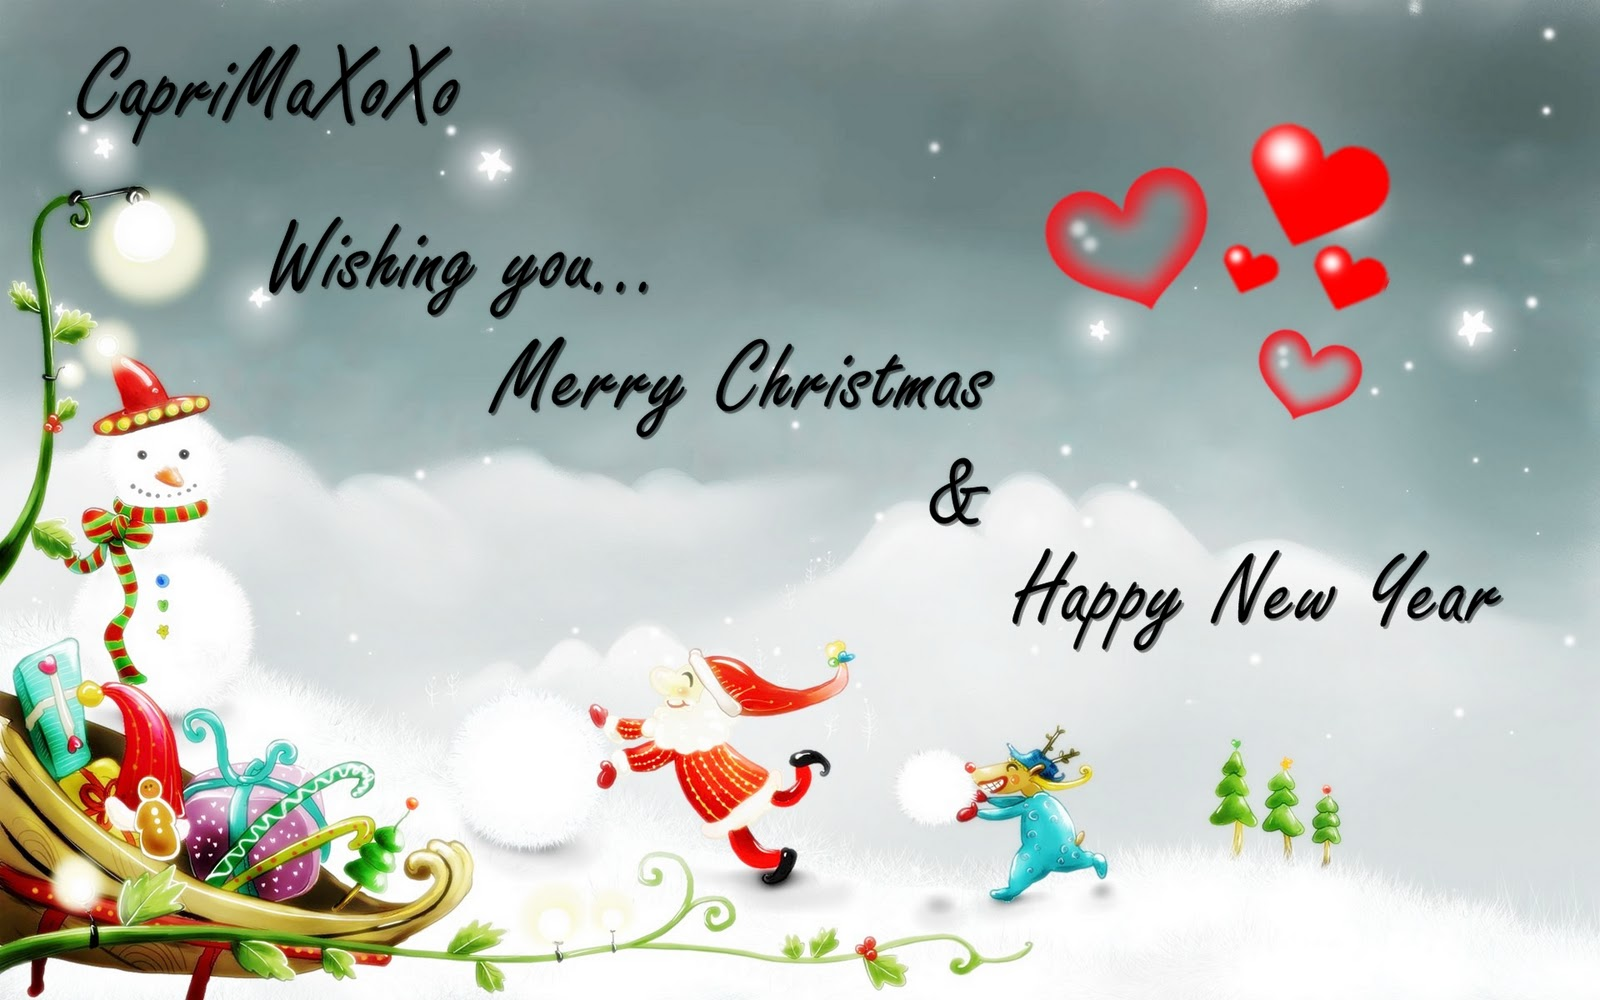 free-christmas-wishes-pictures download hd